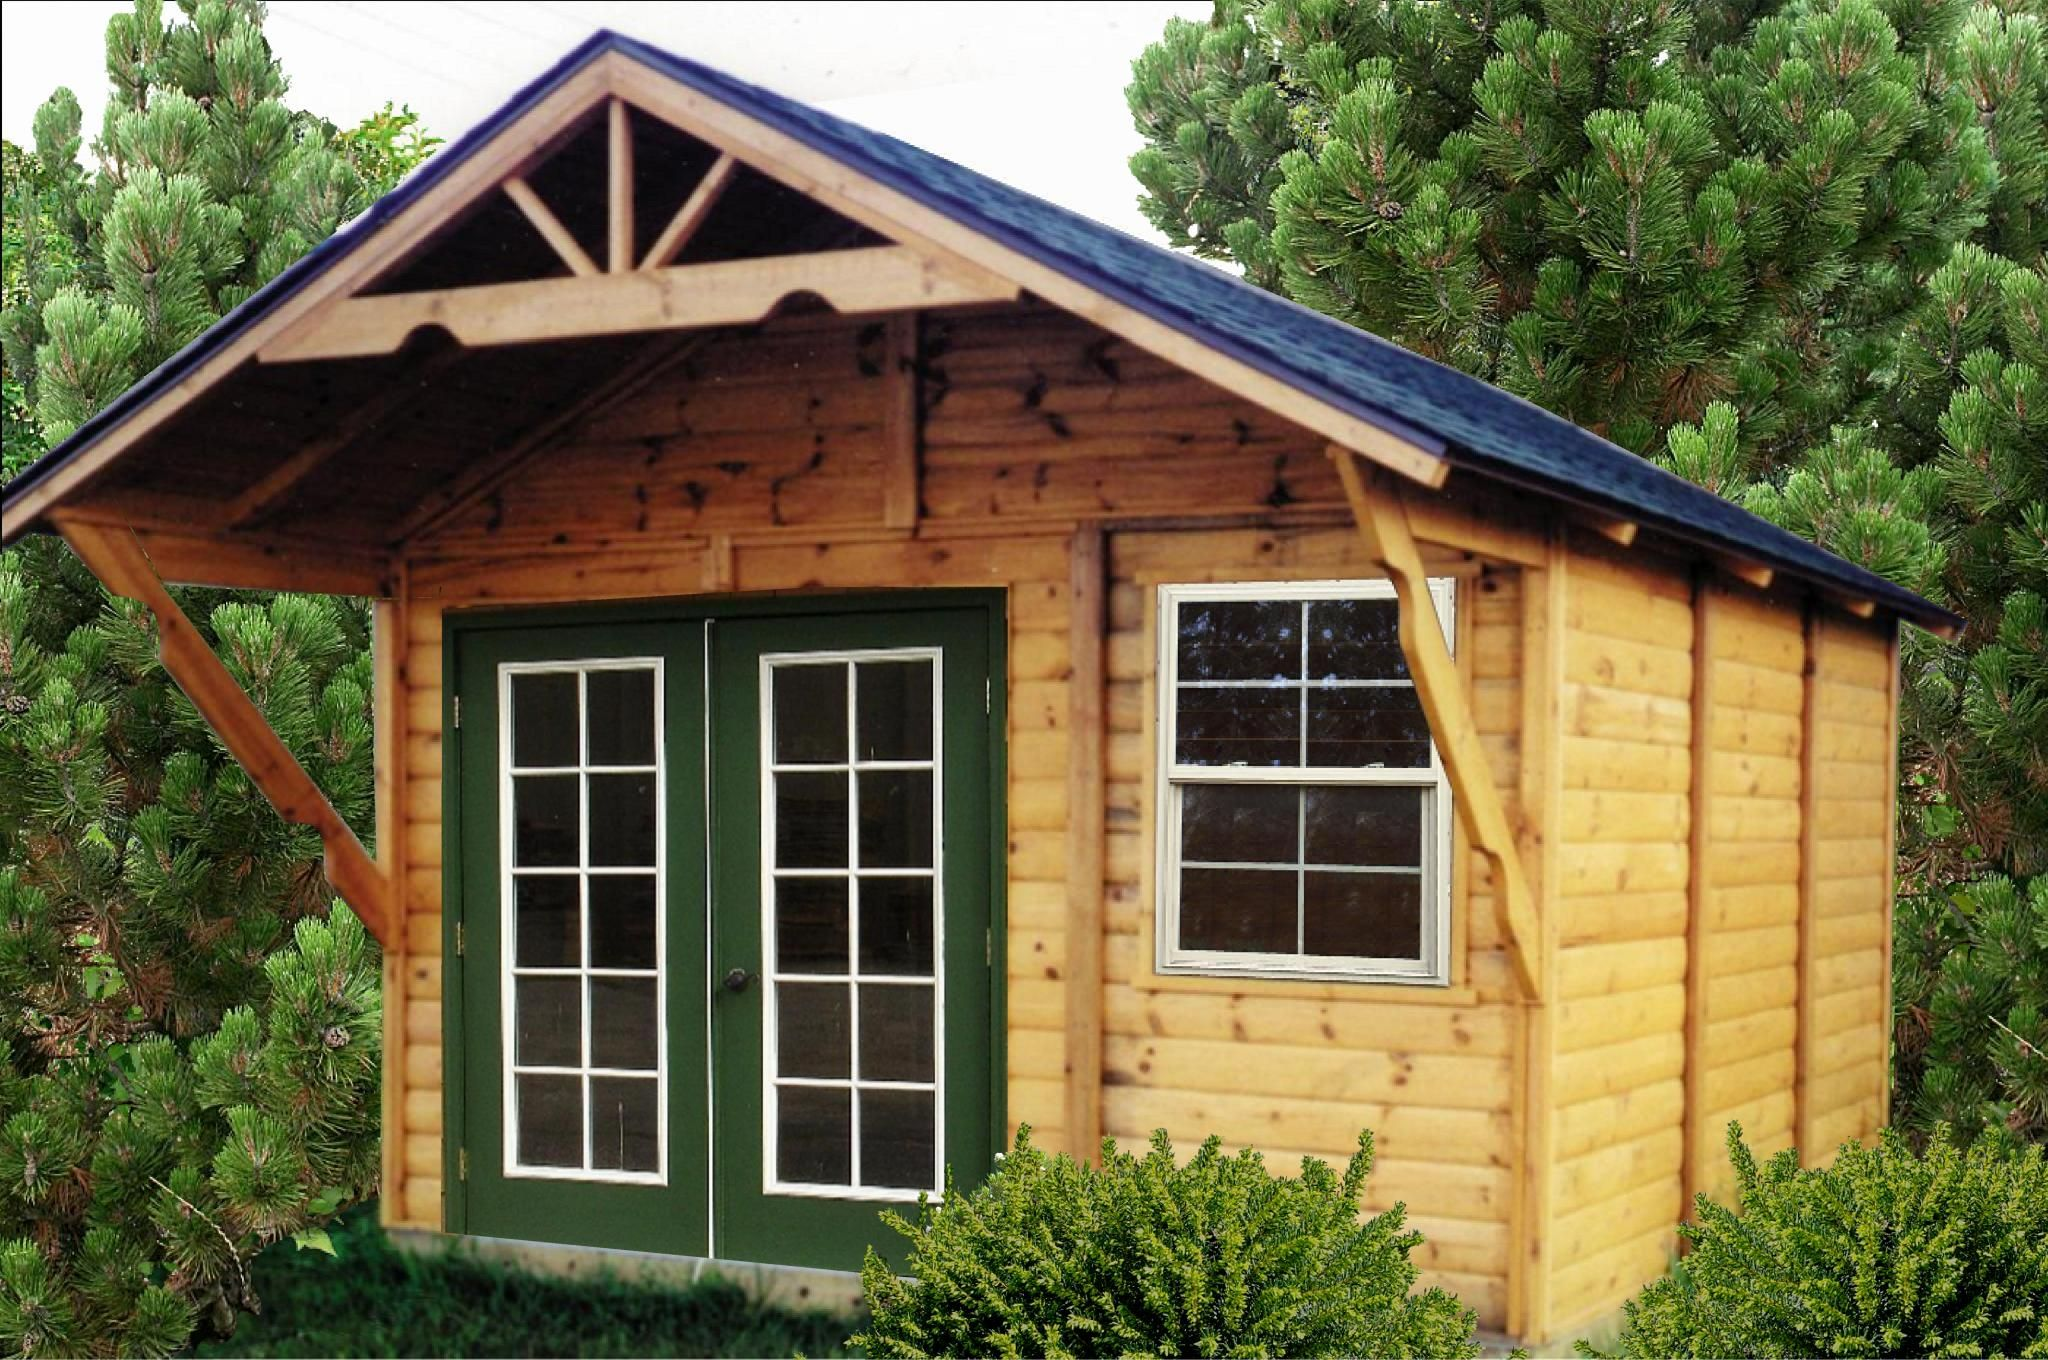 Classy Tuff Sheds Cabins